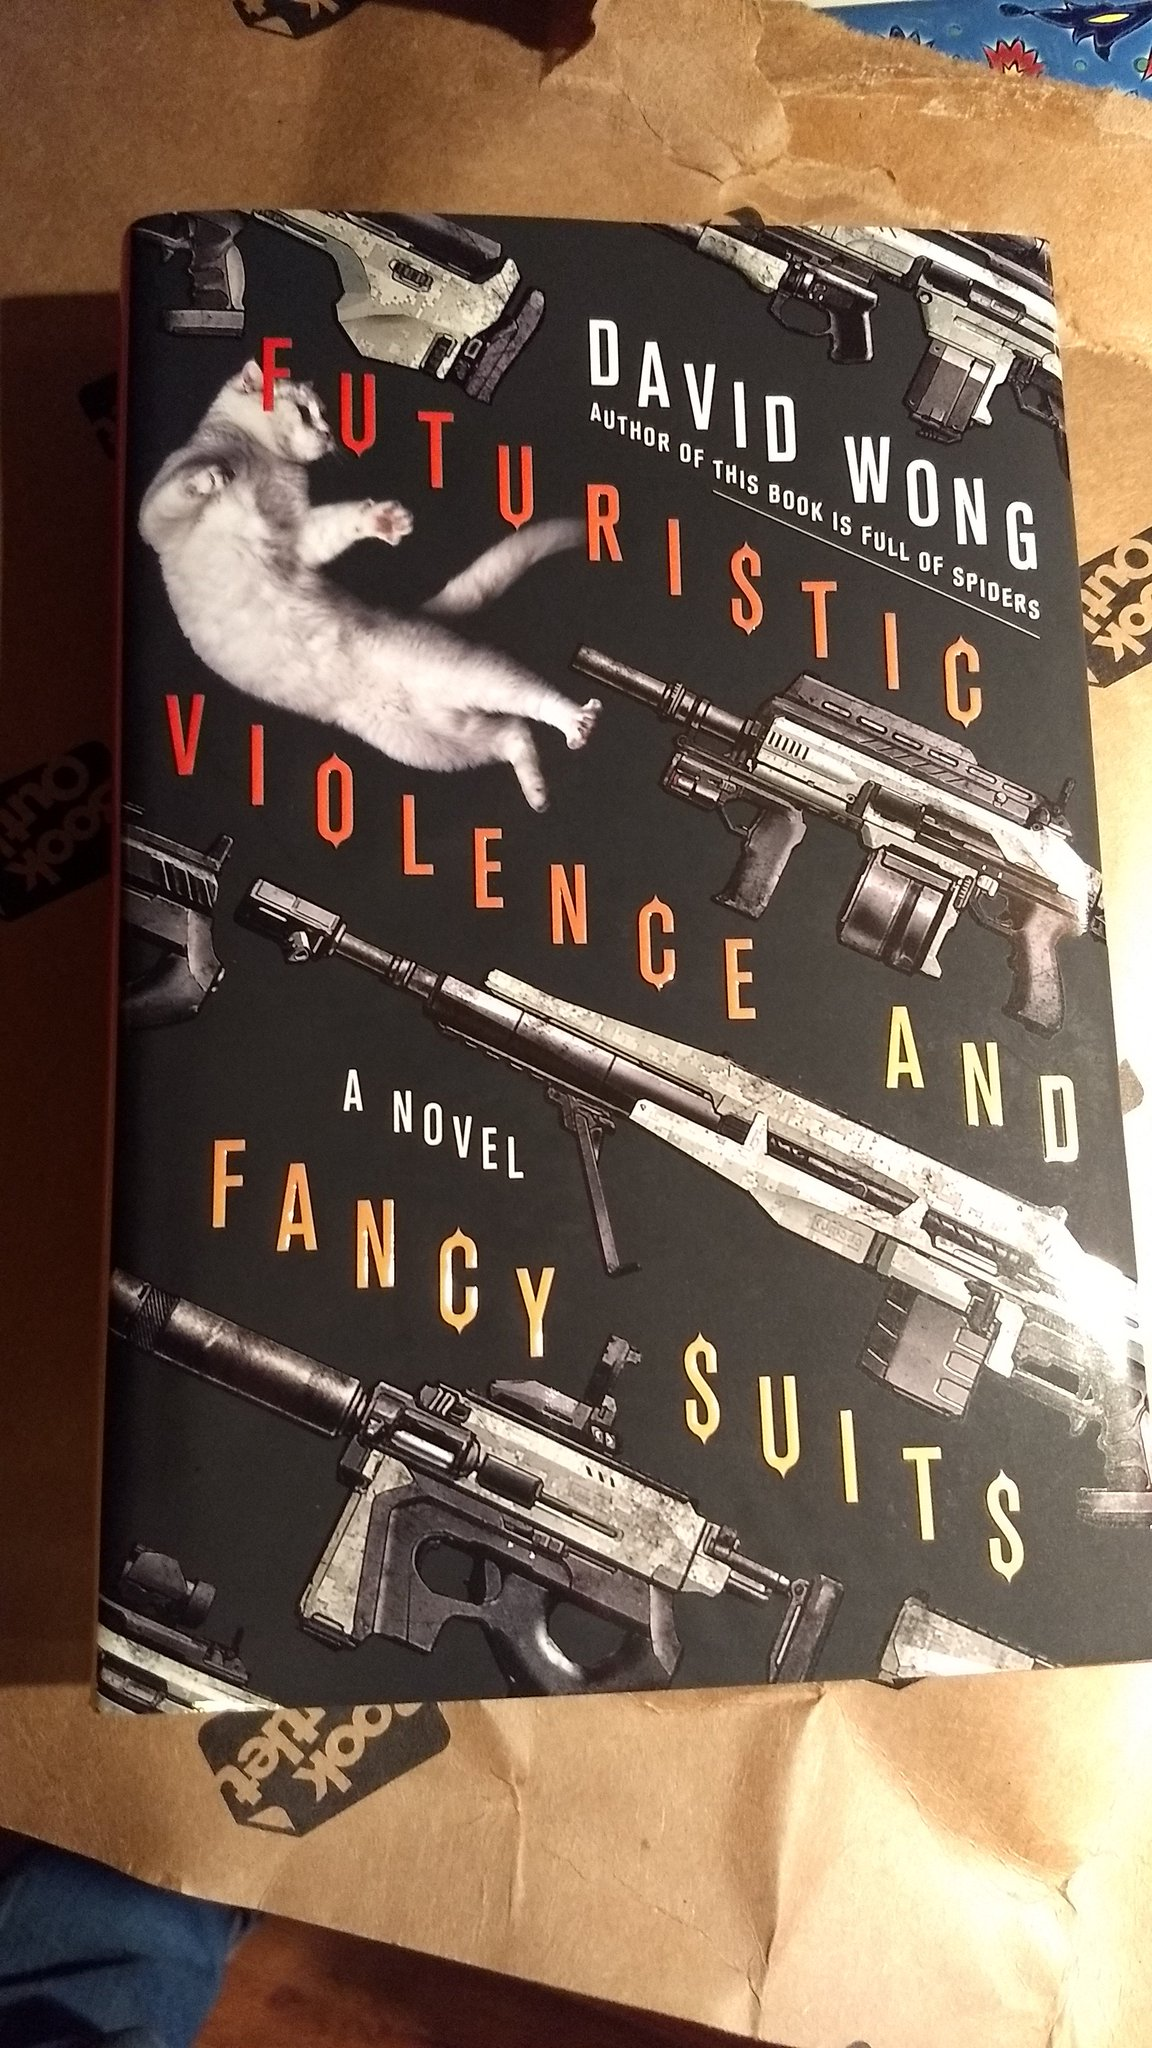 Futuristic Violence and Fancy Suits, hardcover